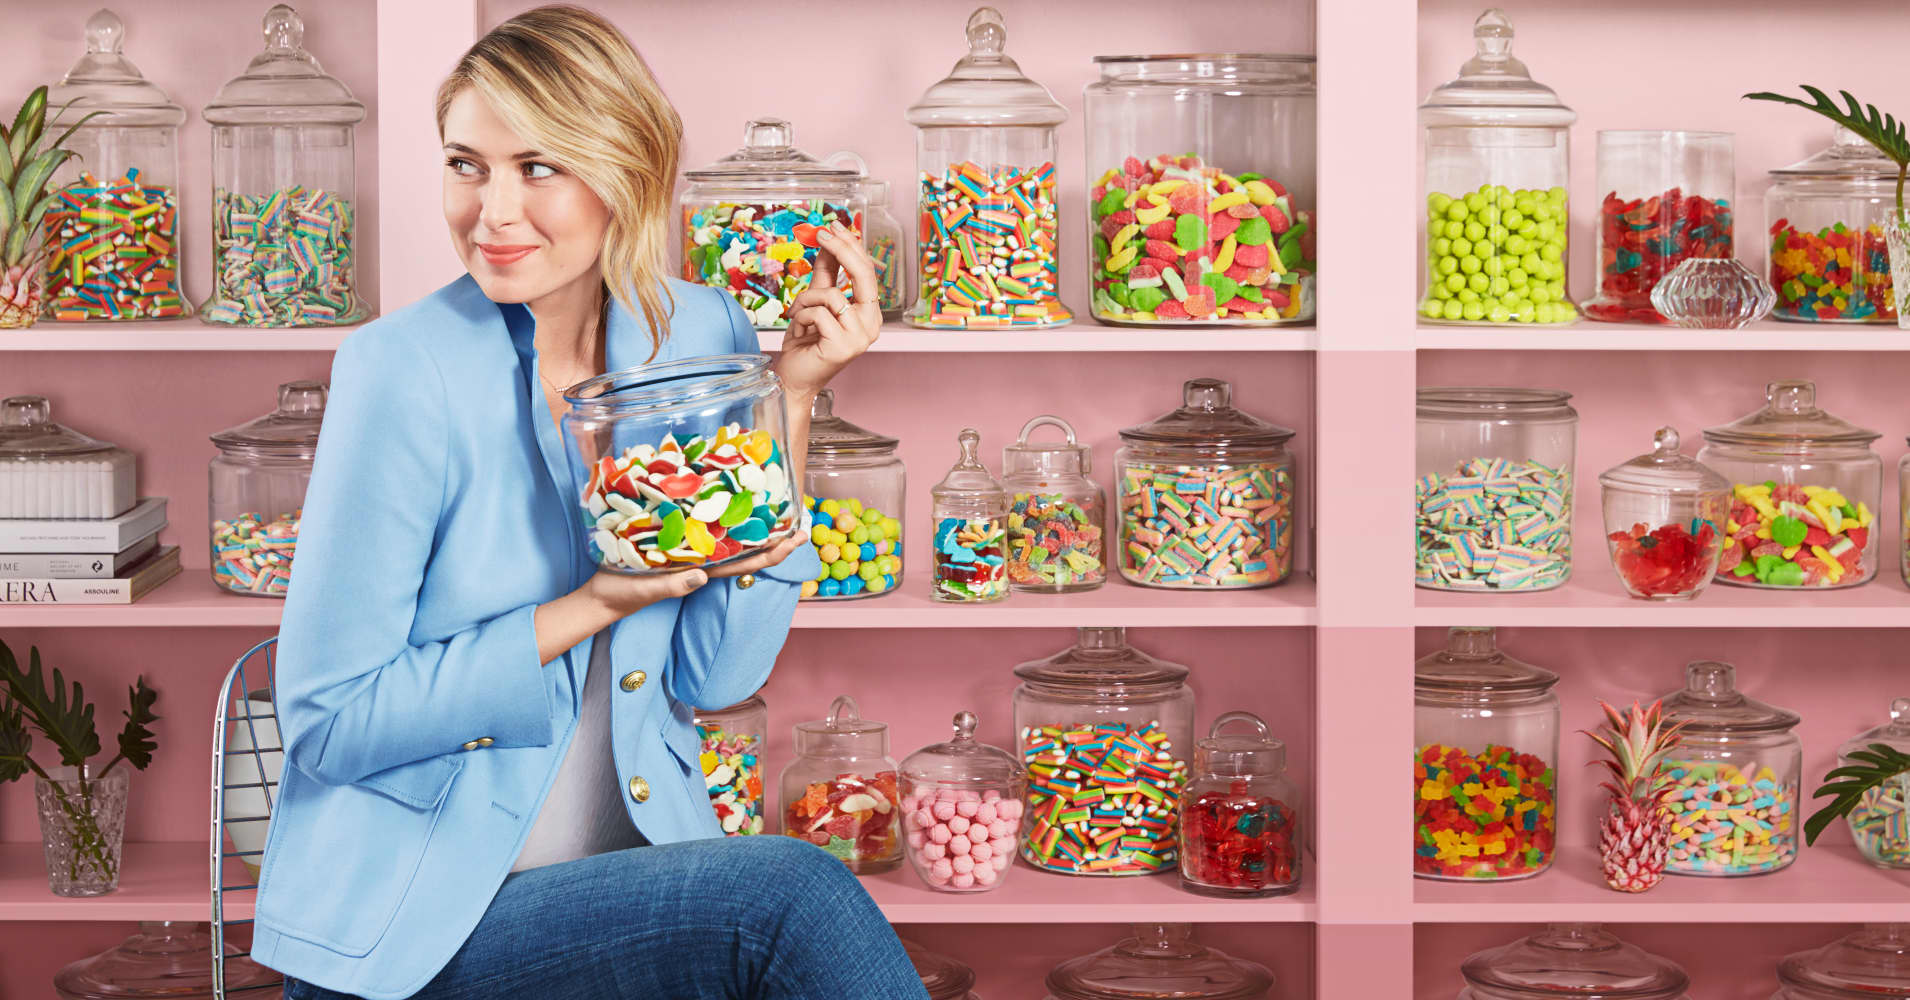 Maria Sharapova launched Sugarpova in 2012